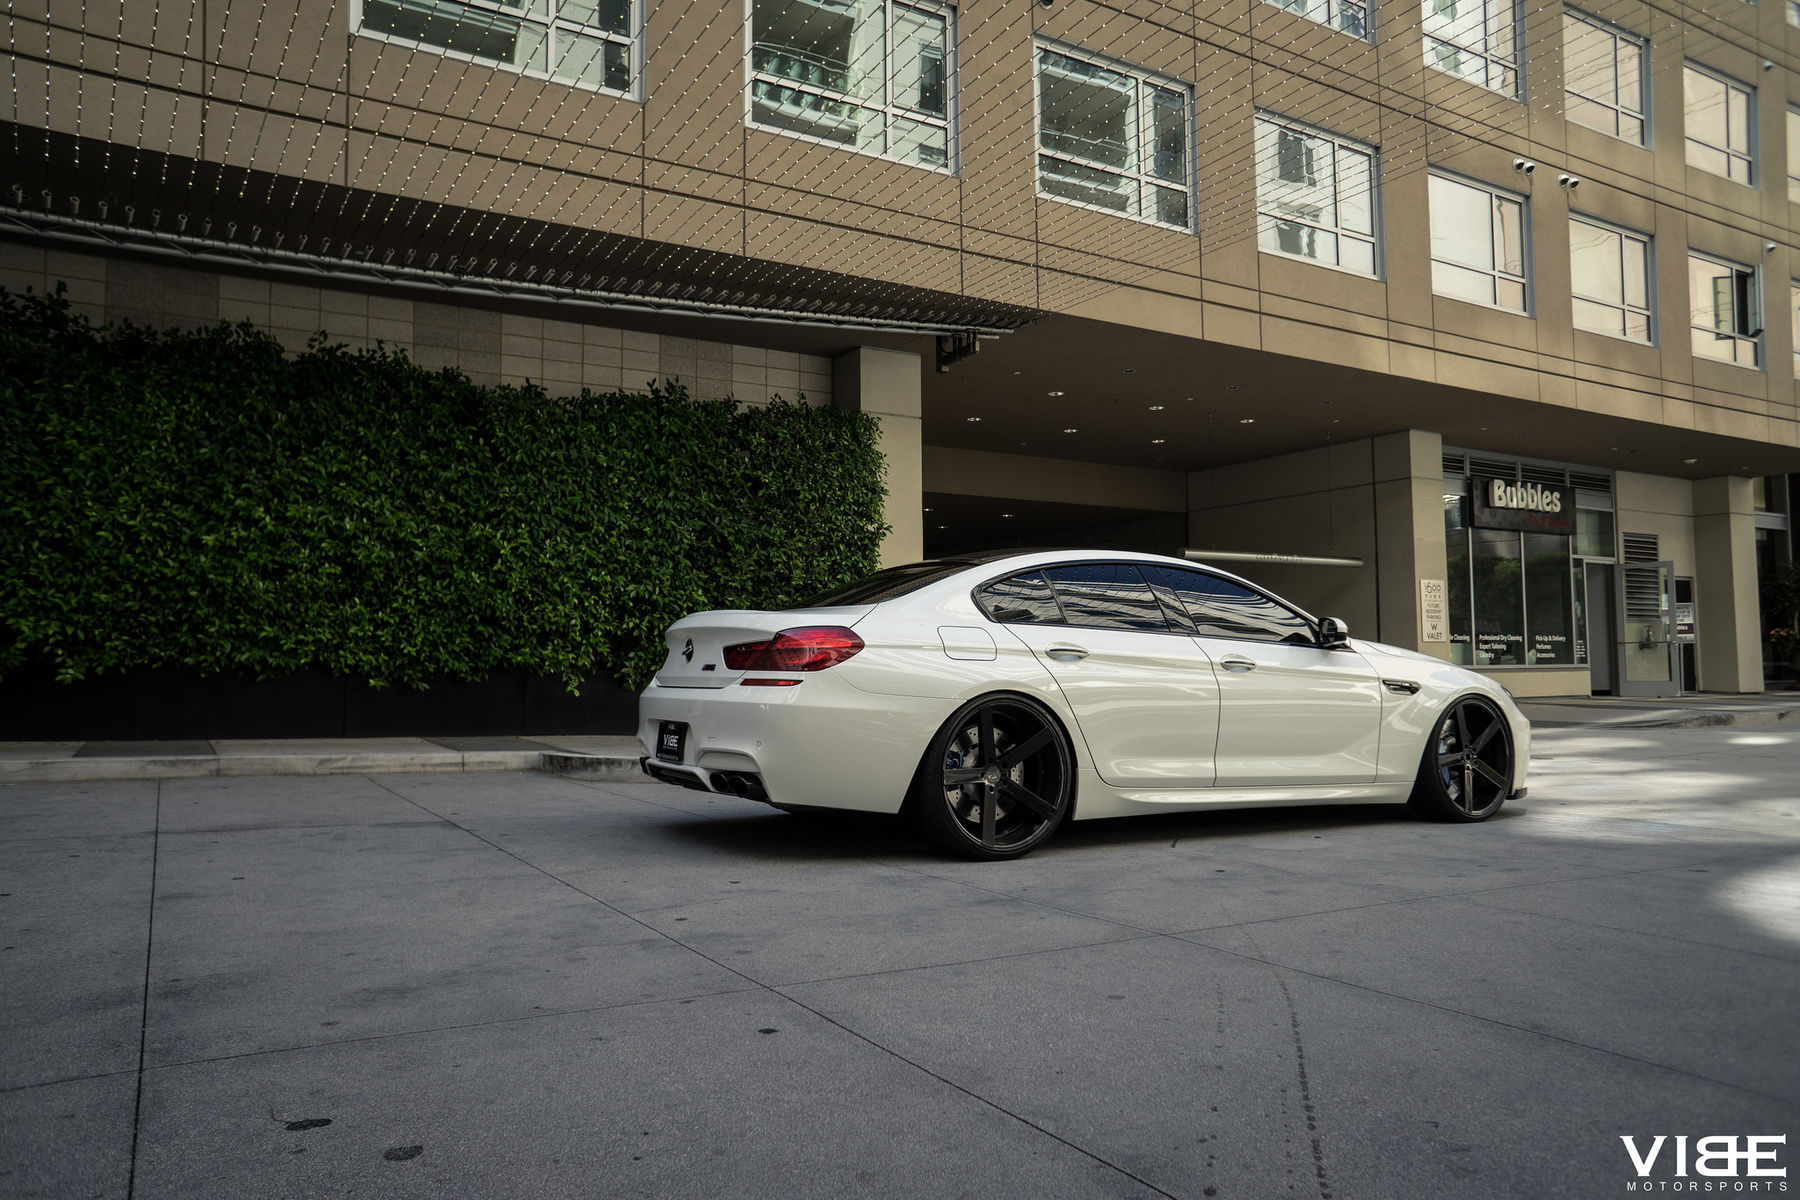 BMW M6 | BMW M6 on Rohana RC22 Wheels - Rear Side Shot